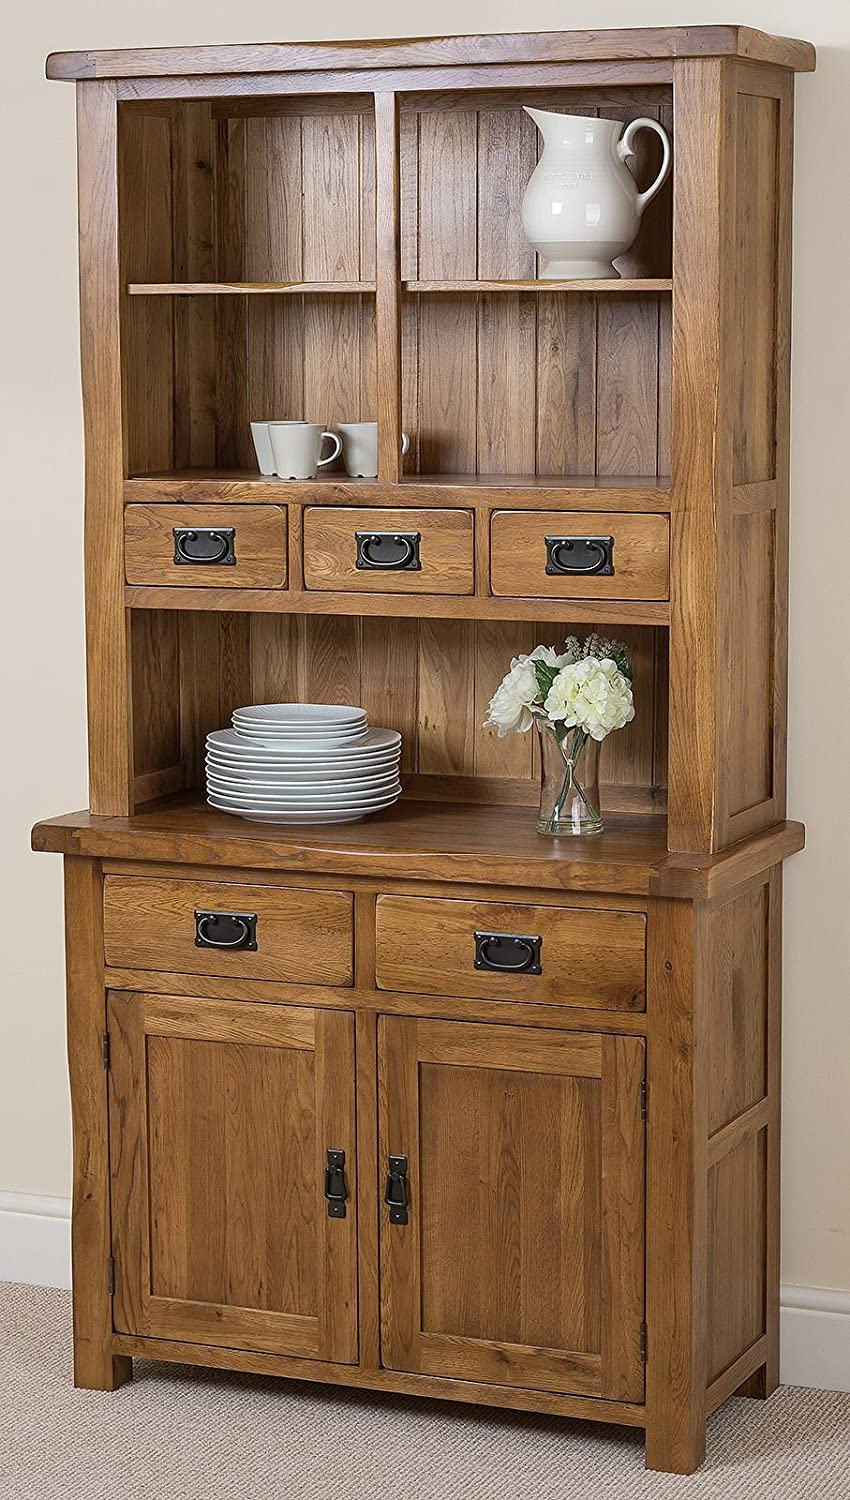 zin reclaimed dresser prm harlan vbar drawers home wood small